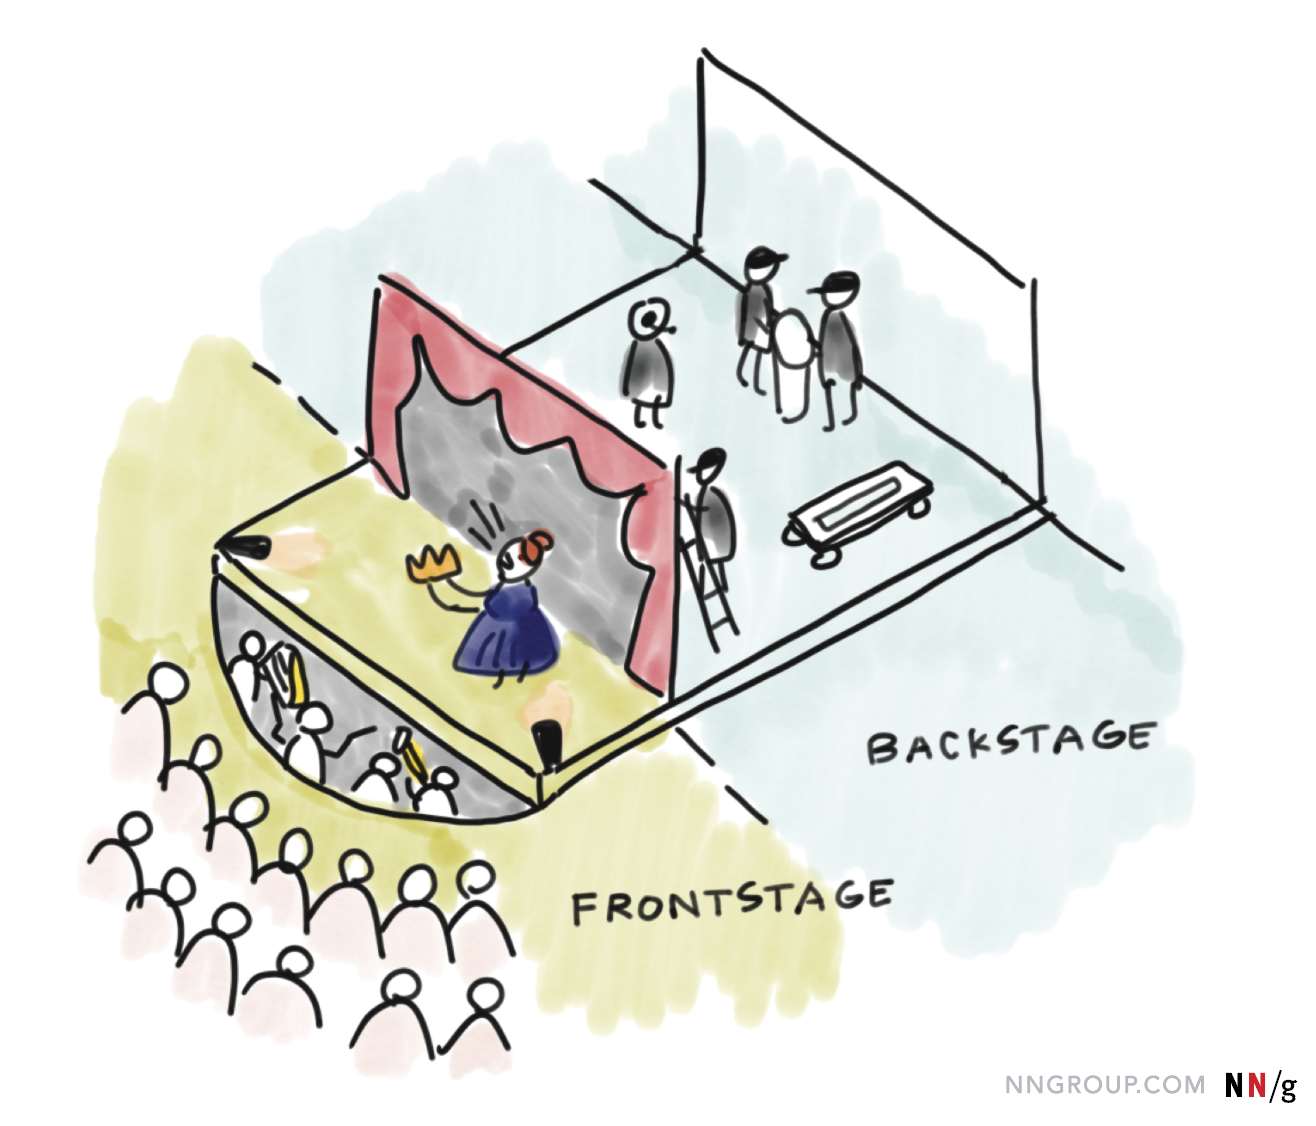 NN/g Service Design: Frontstage vs. Backstage